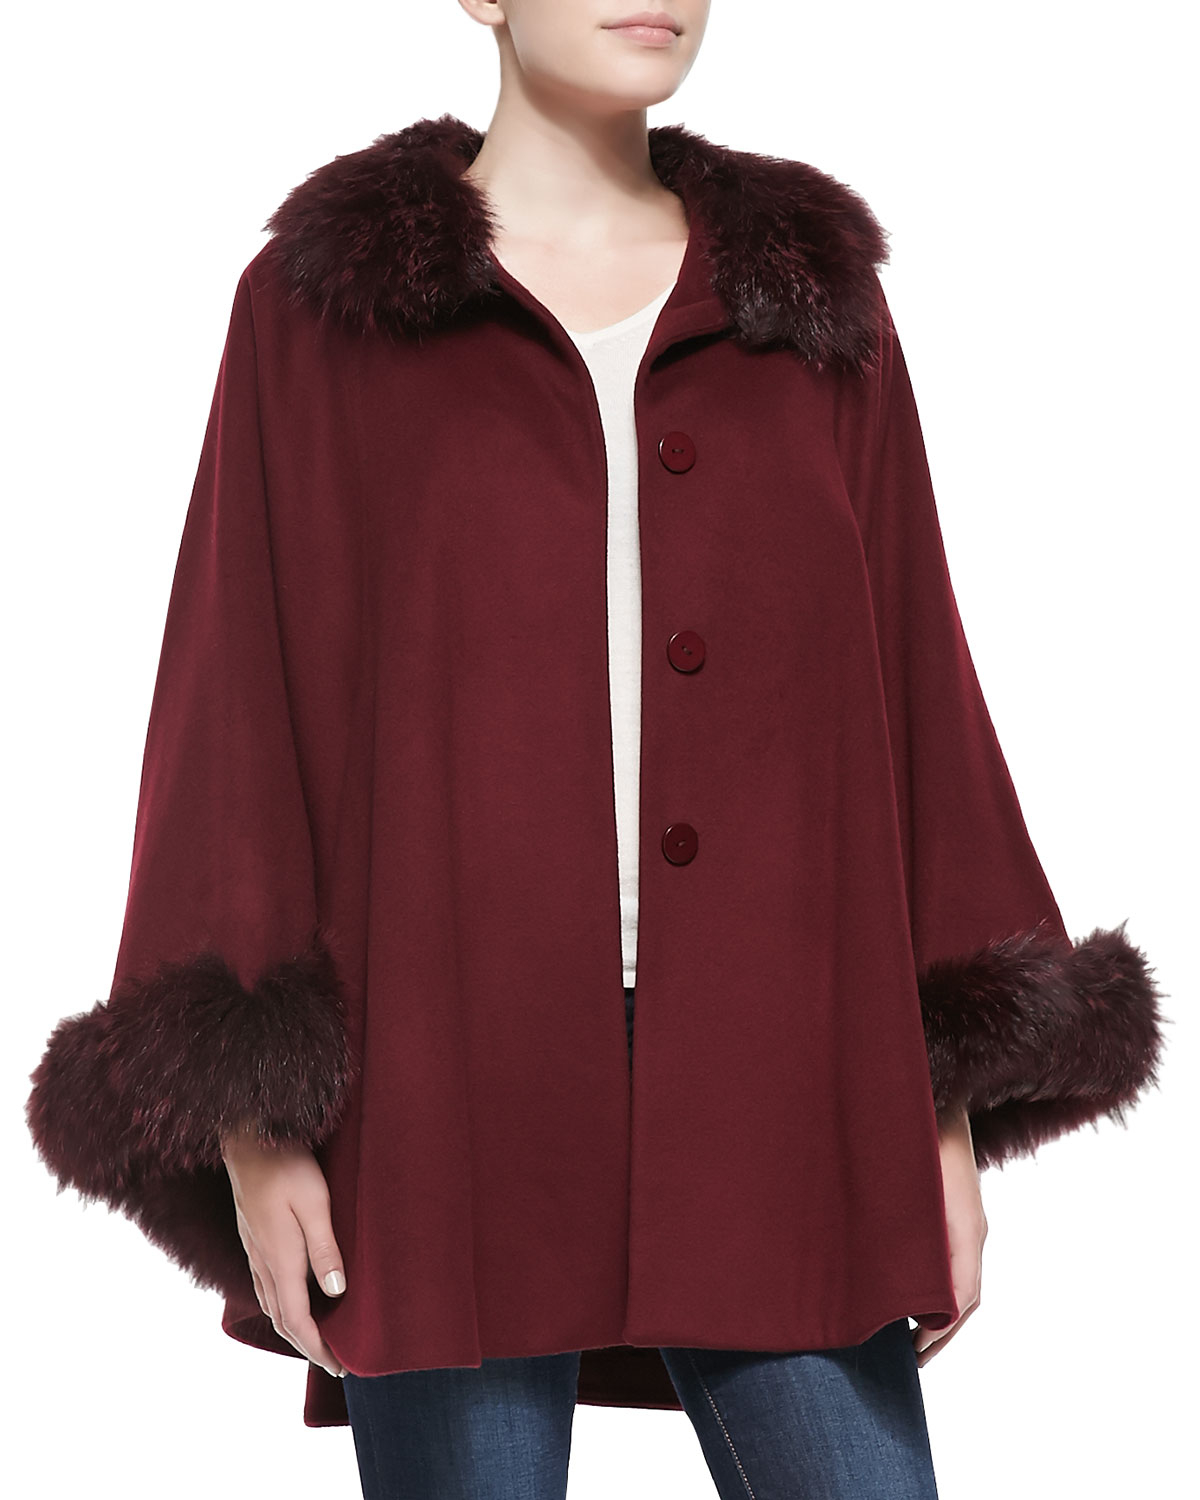 Sofia cashmere Fur-trimmed Button-front Cape Coat in Brown | Lyst